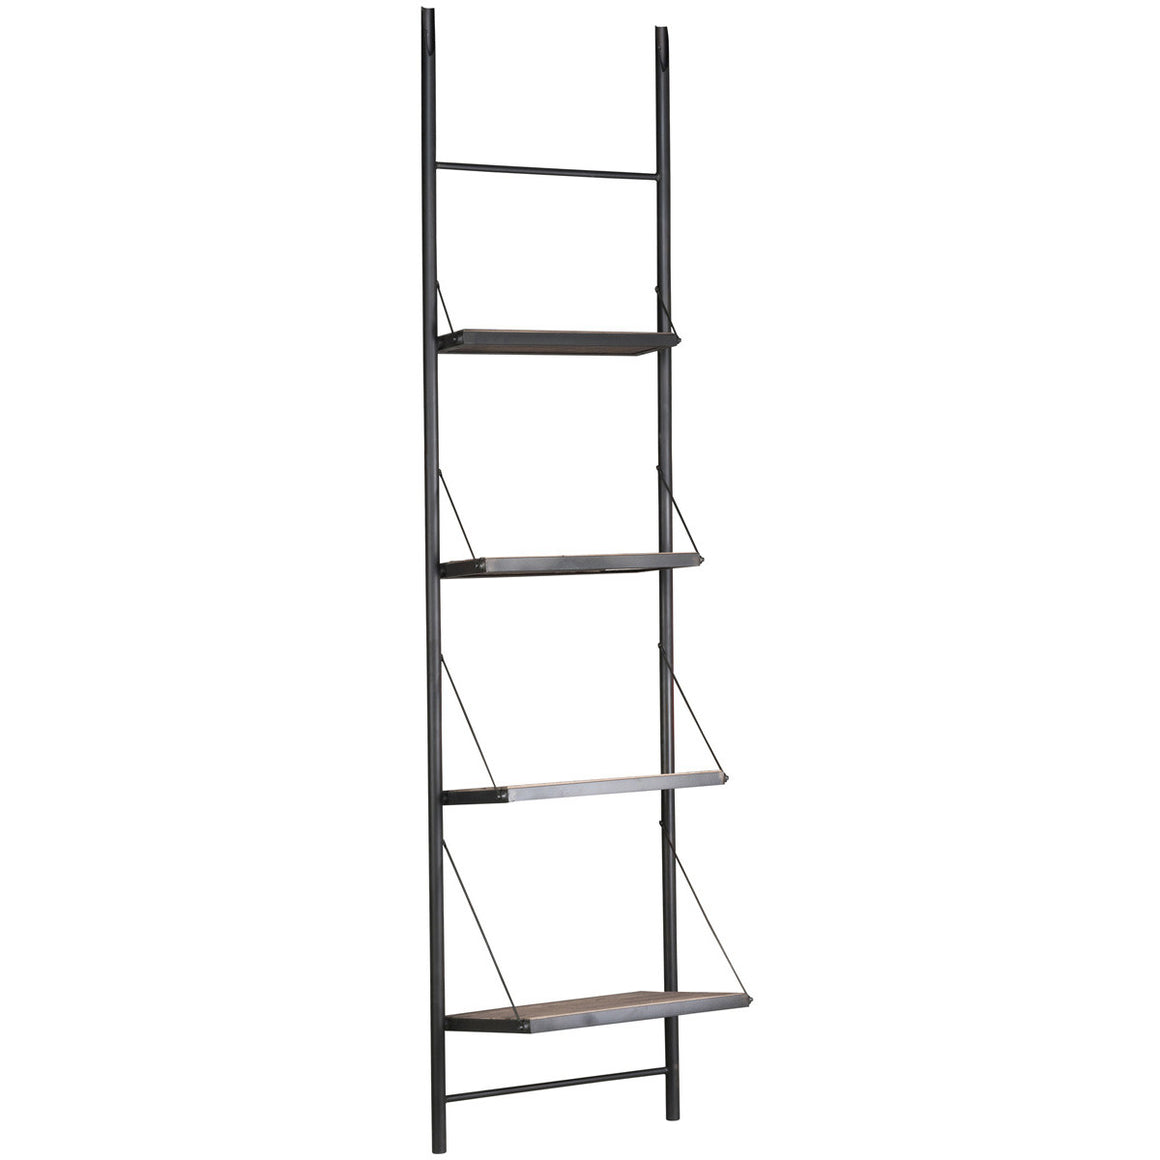 Lennox Ladder Bookshelf SM